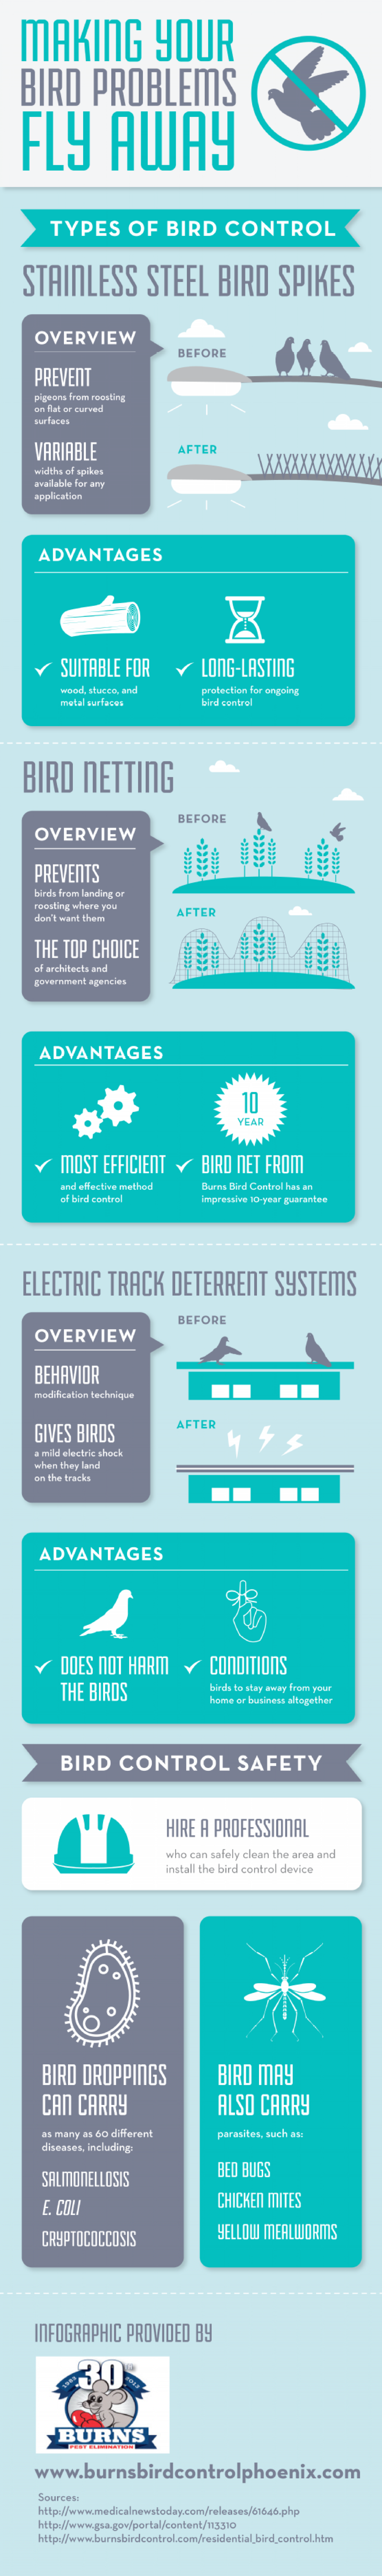 Making Your Bird Problems Fly Away Infographic